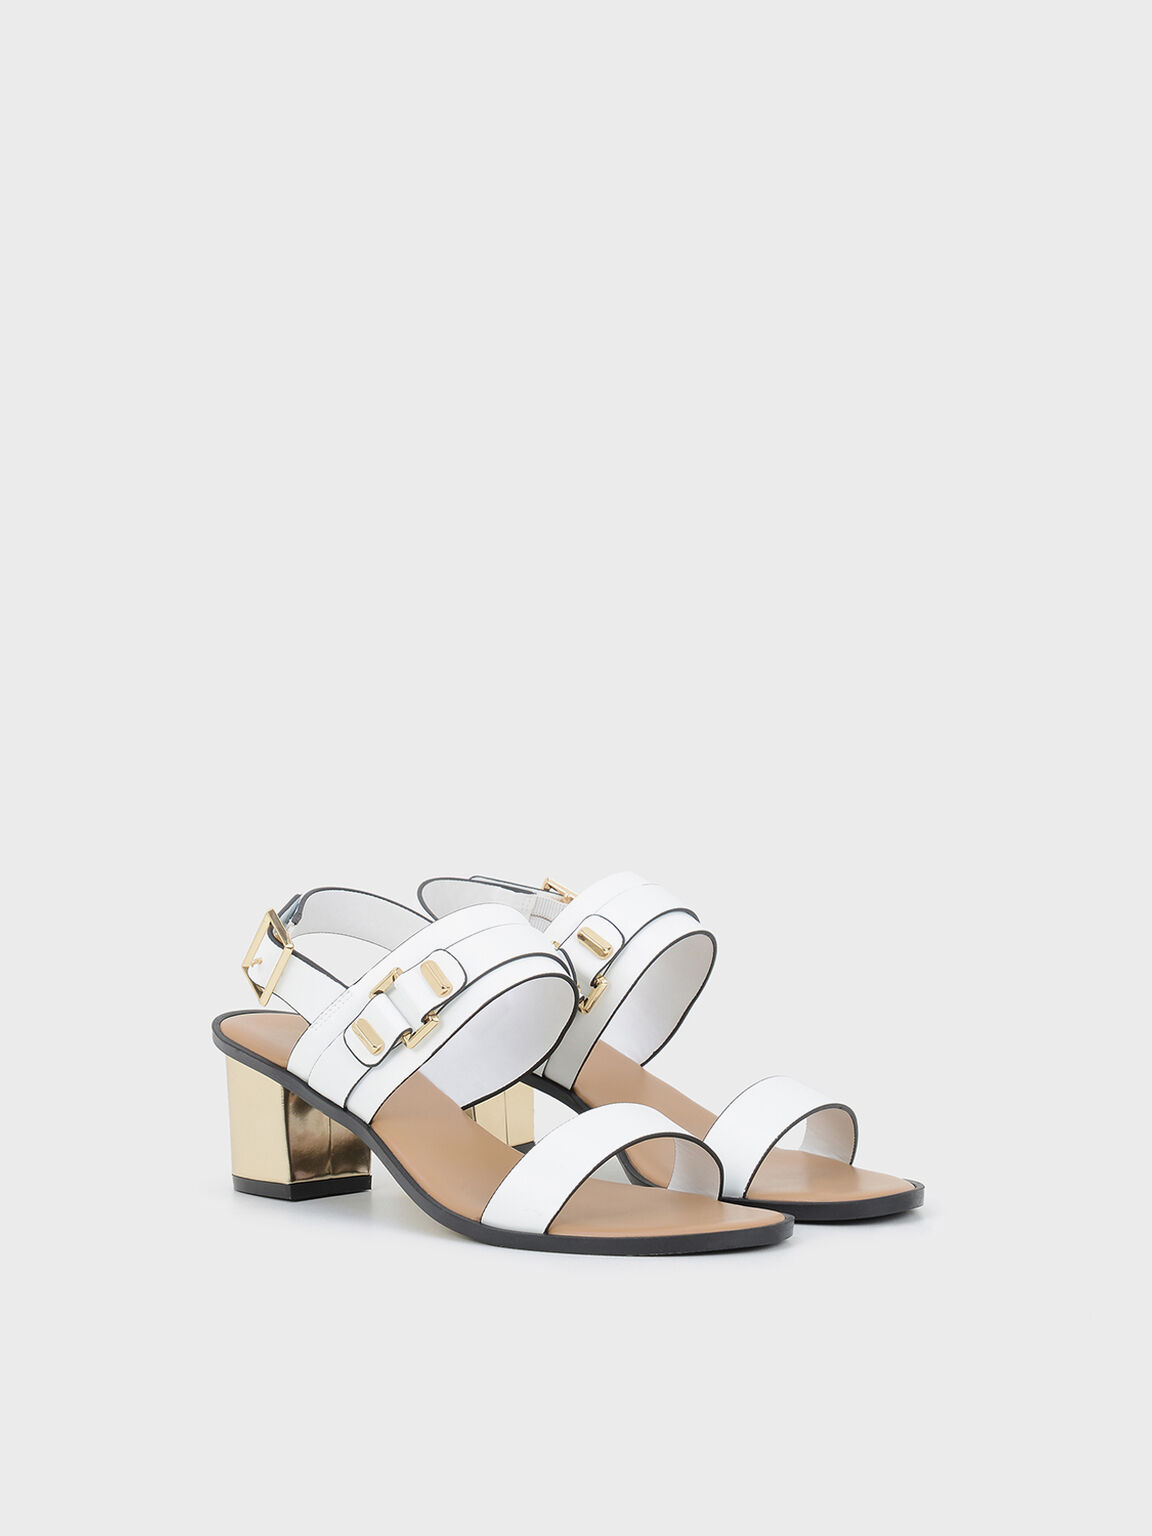 Heeled Sandals, White, hi-res